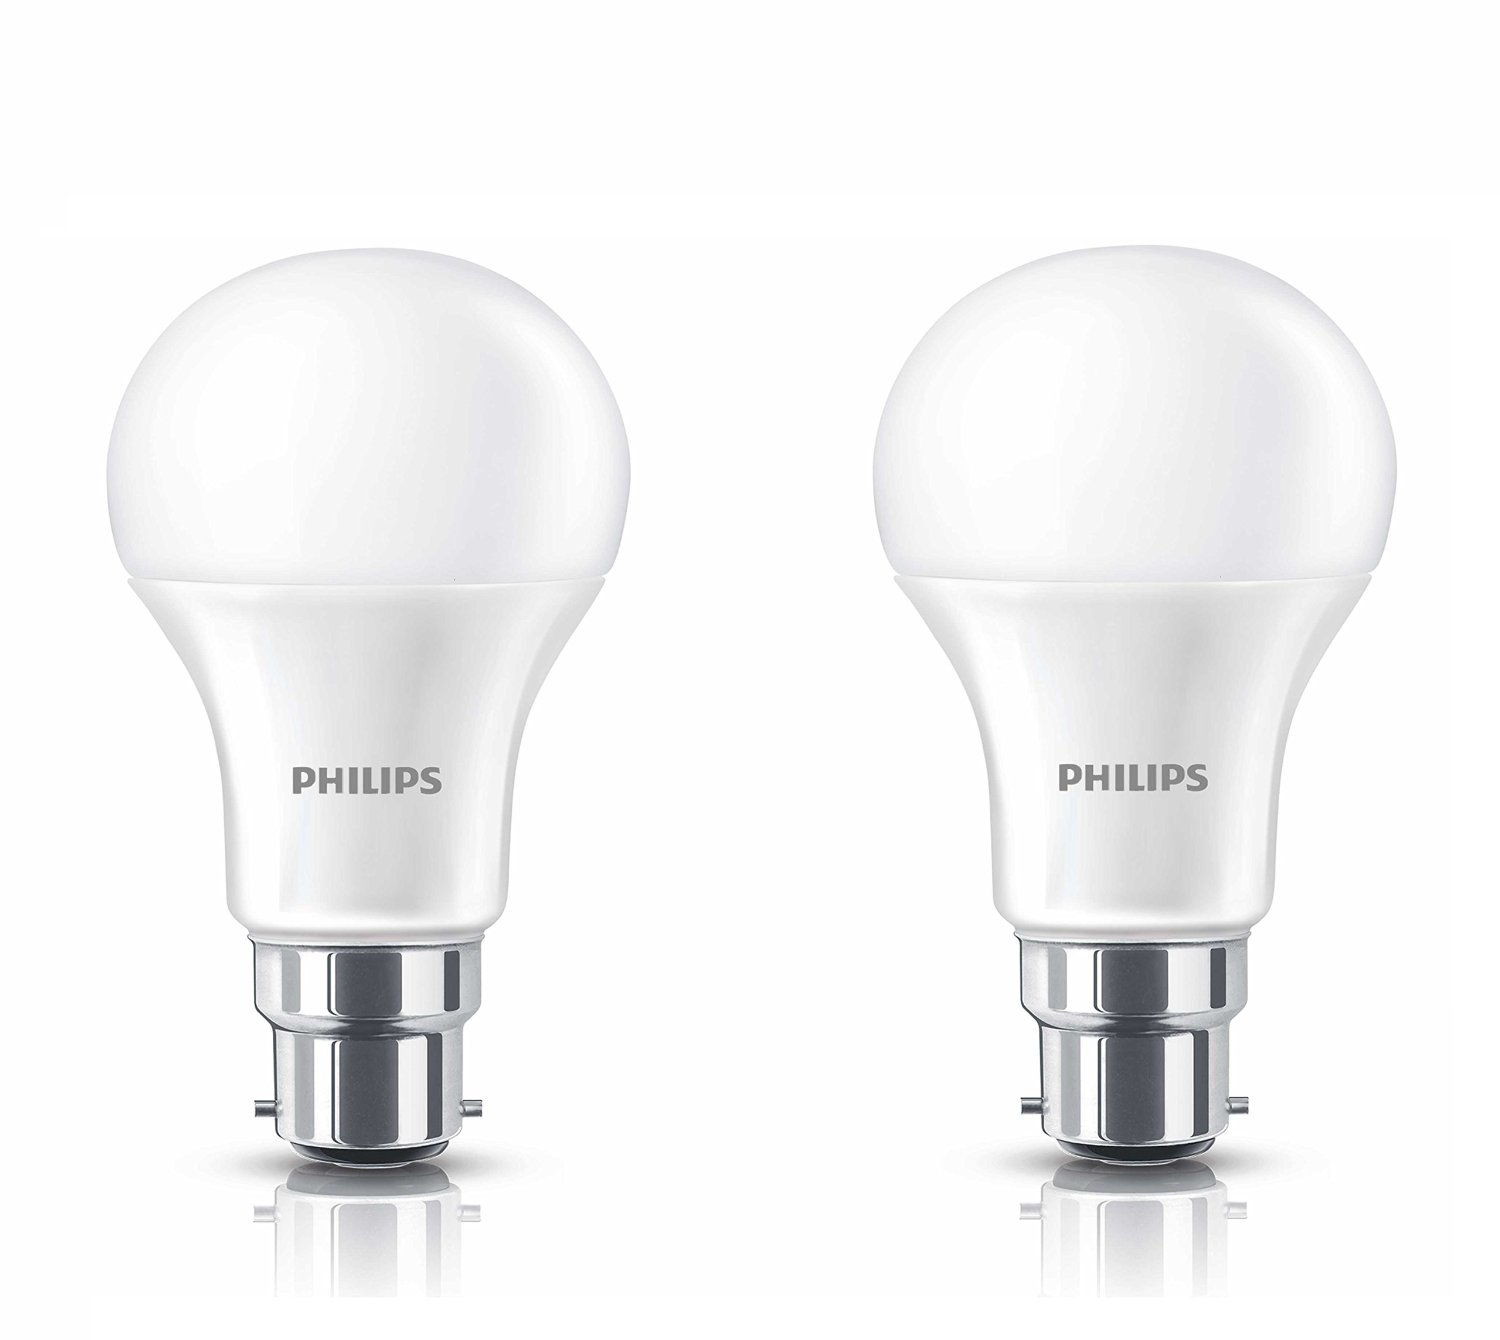 Led Bulb Buying Guide How To Select 2019 India Besides Incandescent Light Bulbs On Diagram Philips Base B22 105 Watt Warm Whitepack Of 2